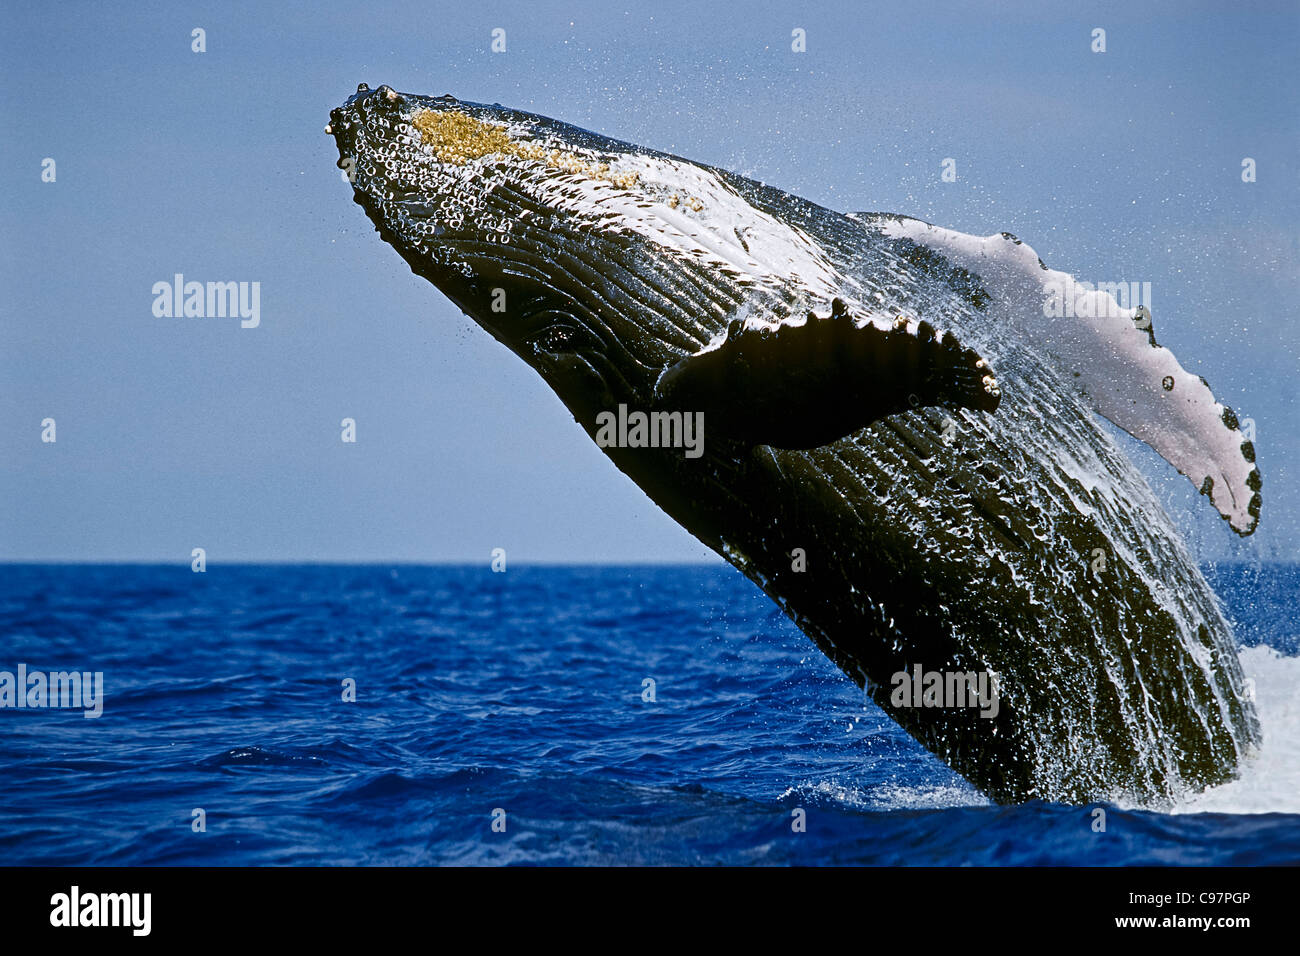 Breaching humpback whale, Hawaii'humpback whale', lunging, breaching, whale - Stock Image